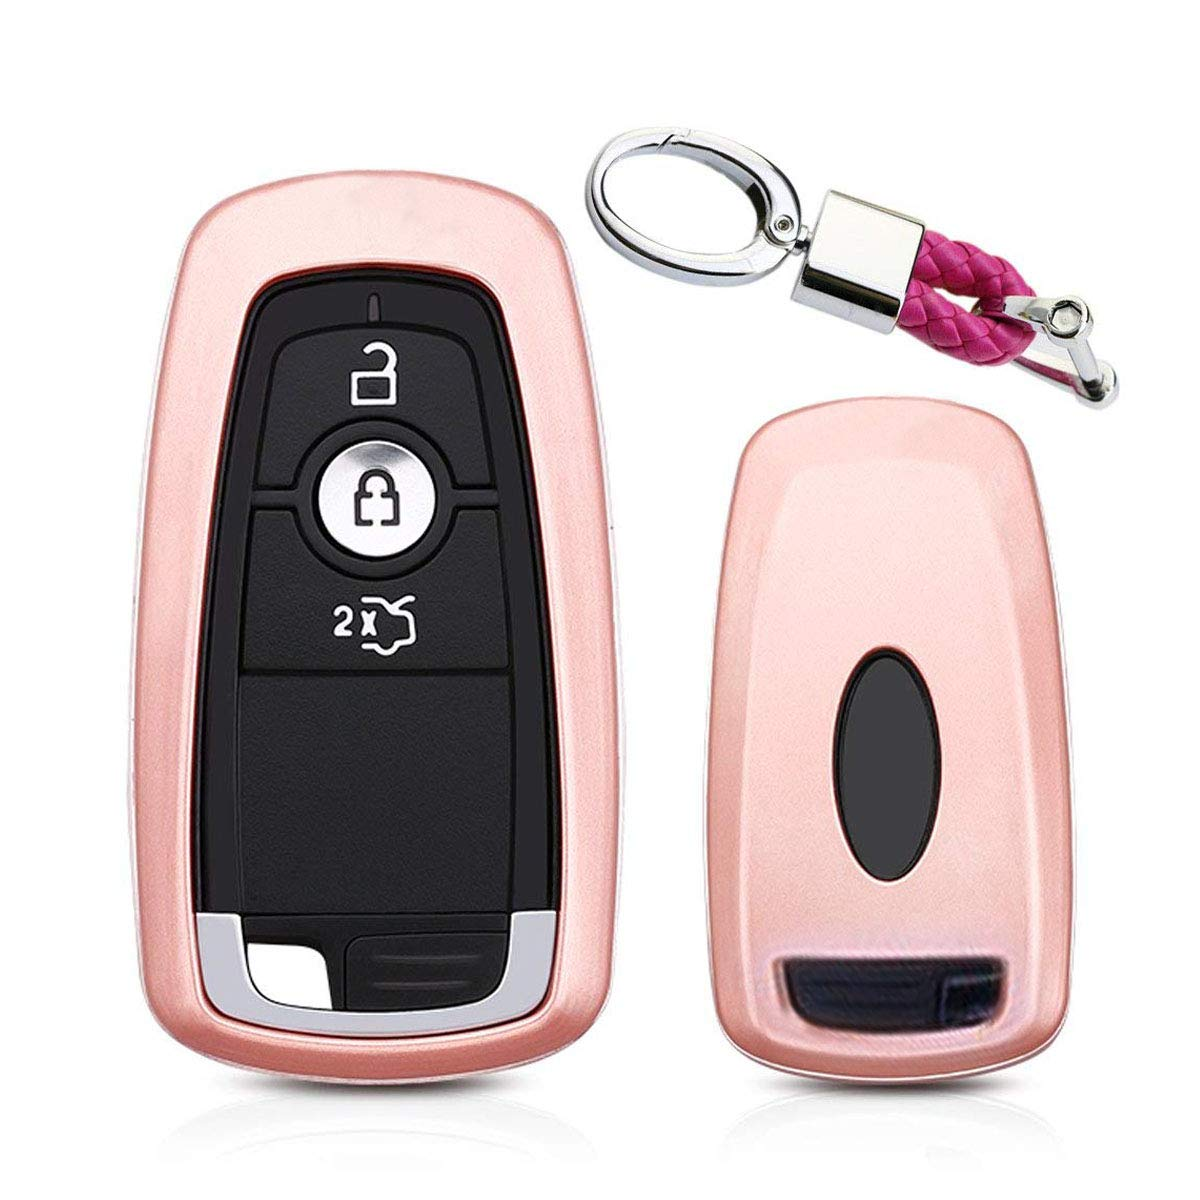 MODIPIM Keyless Entry Remote Case Key Fob Cover with Keychain(Braided Cord) ABS Hard Holder Shell Fit Ford Mondeo 3/4/5-Buttons Smart Key Color Pink